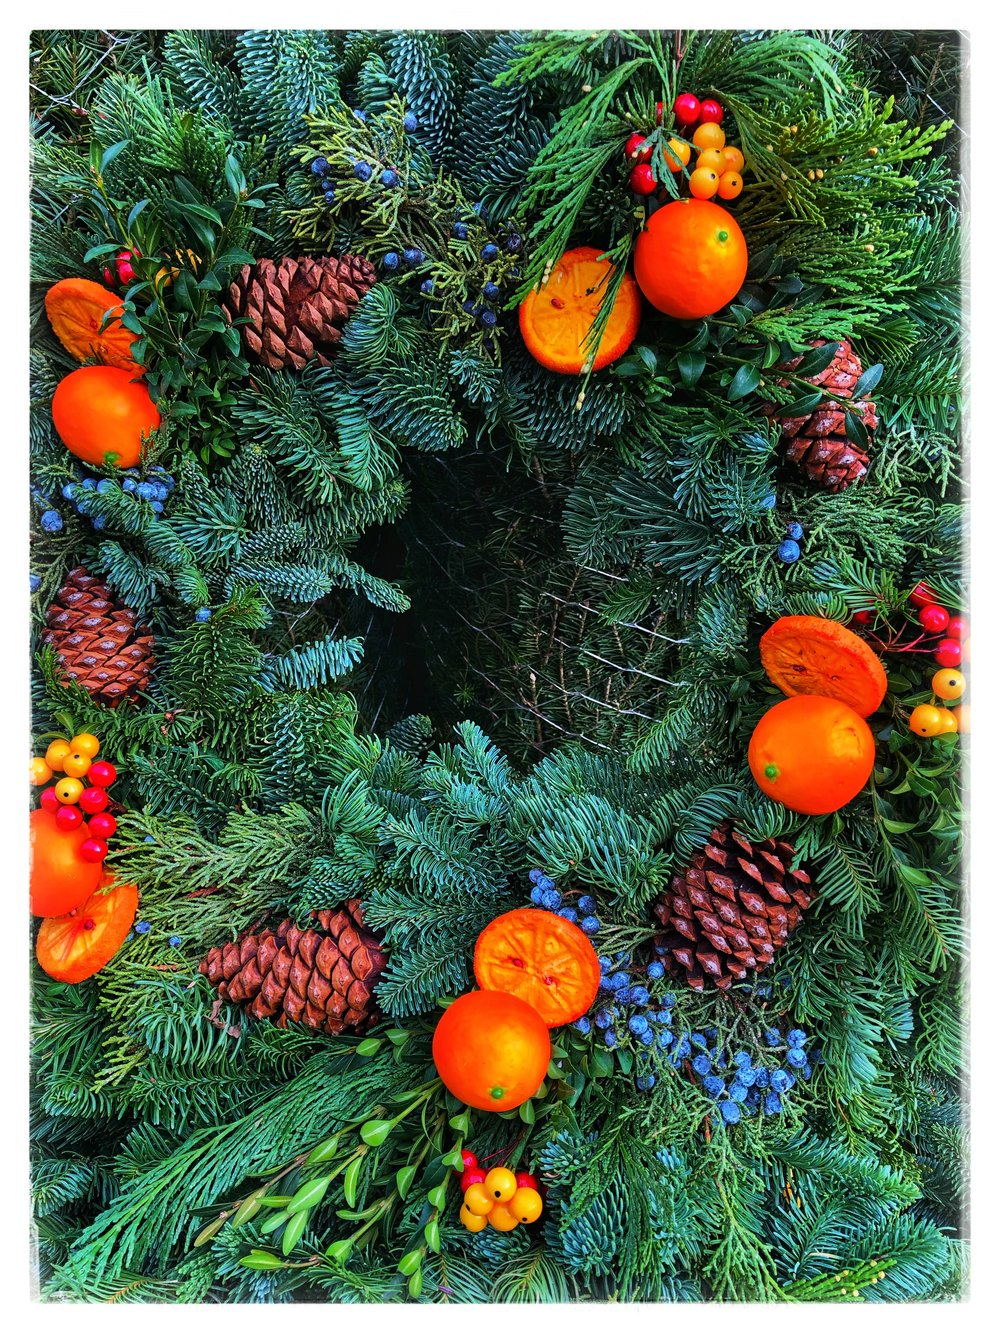 Holiday wreaths have arrived at Russo's!